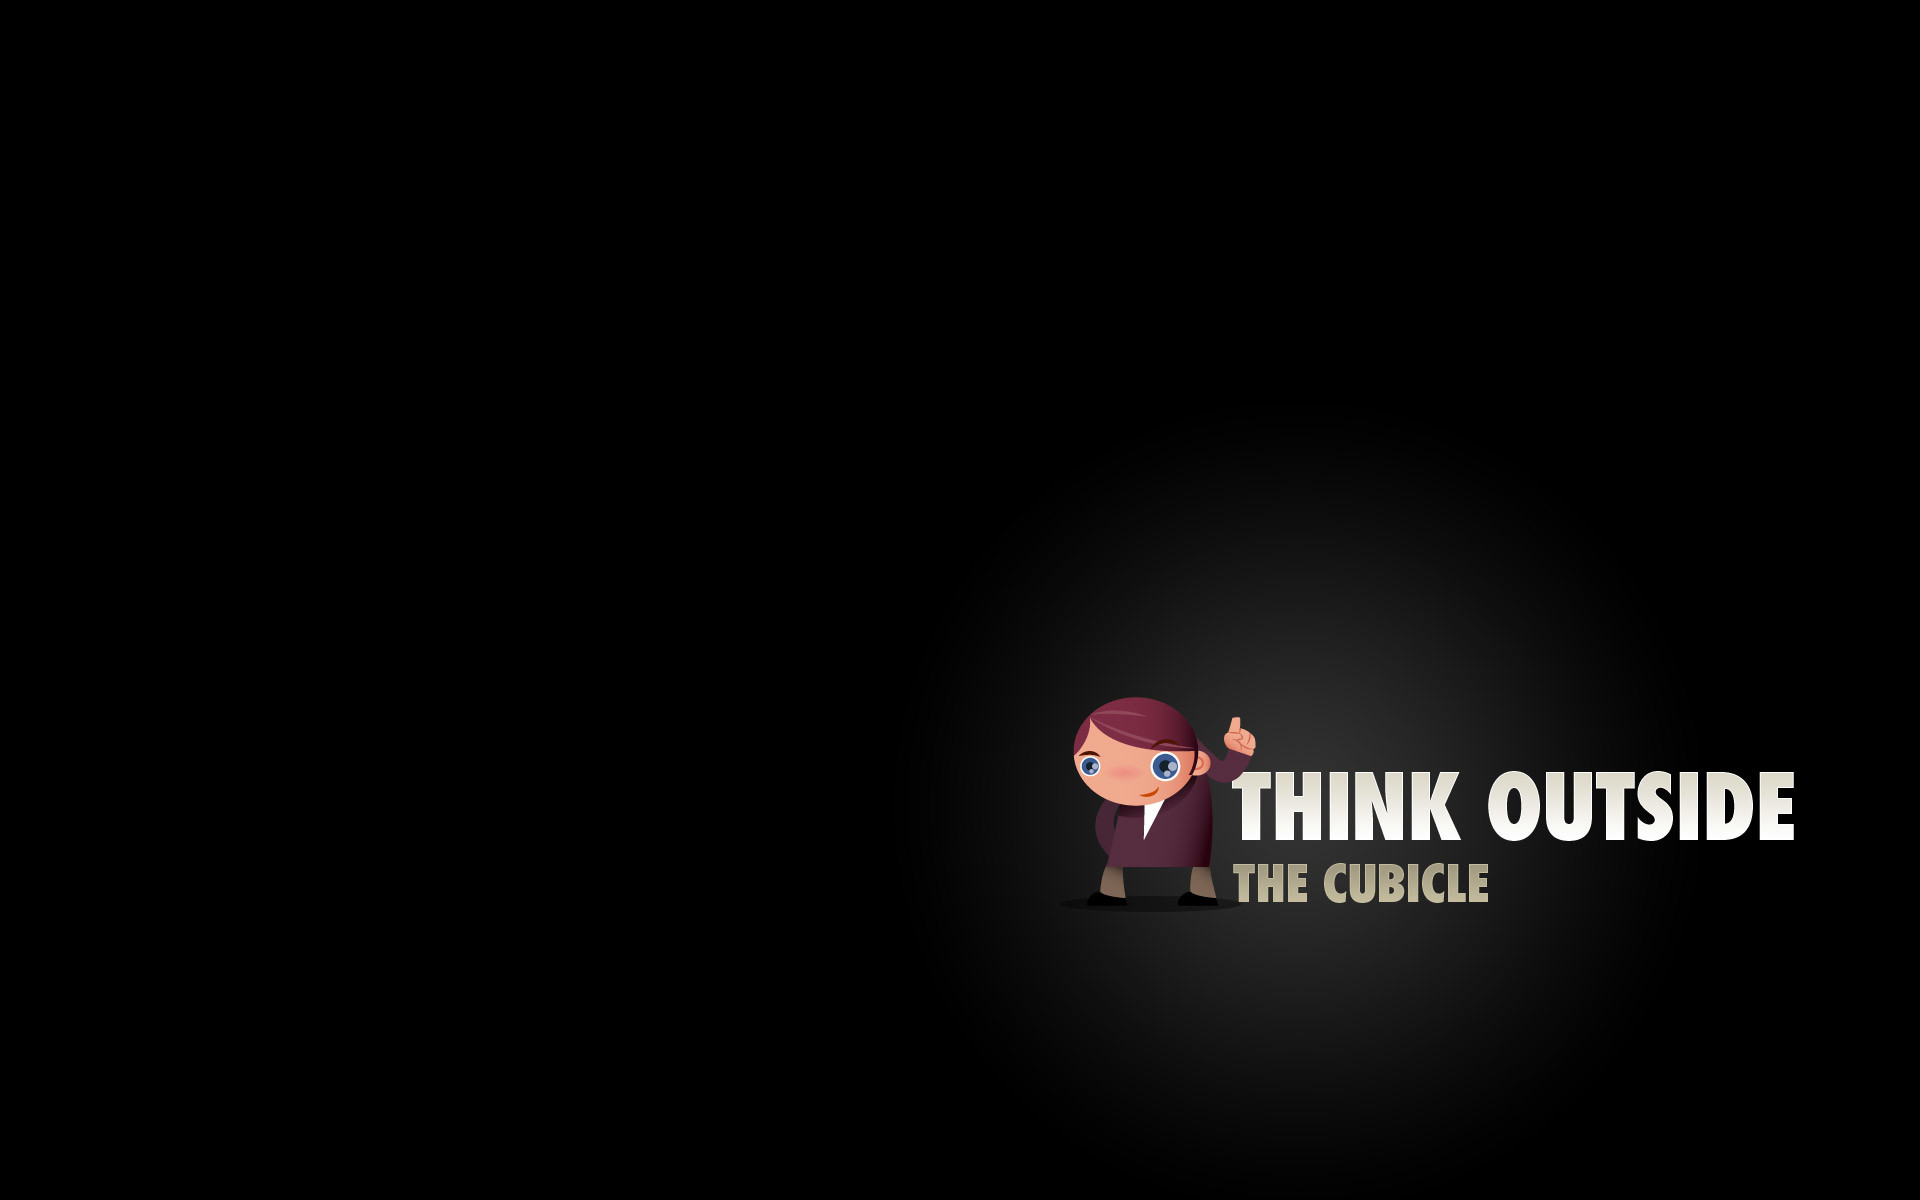 1920x1200 Think Outside The Cubicle wallpaper